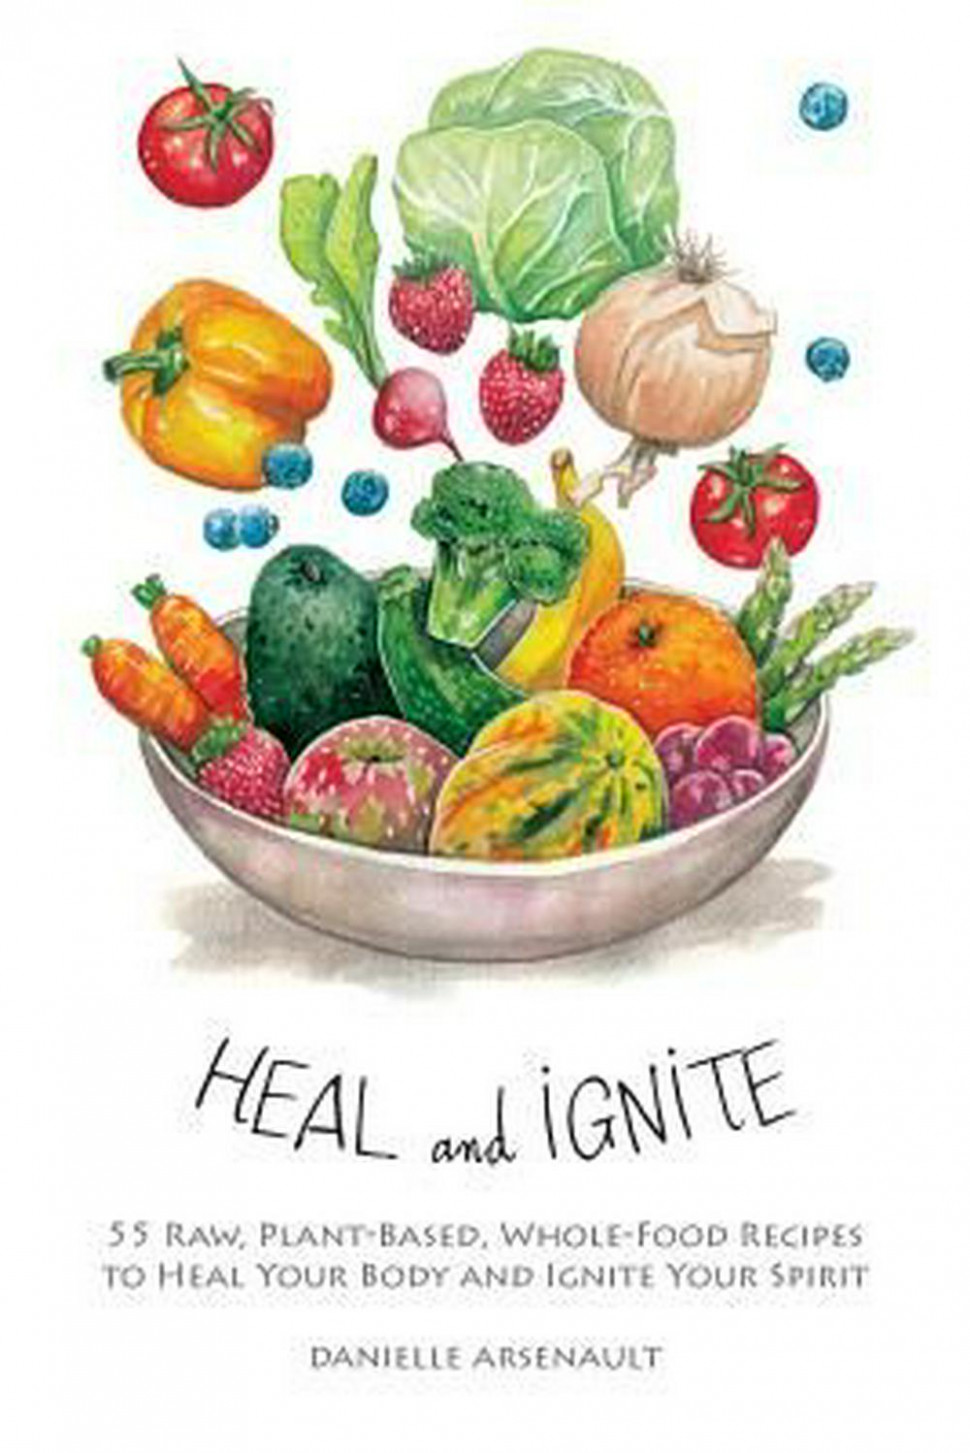 Details about Heal and Ignite: 11 Raw, Plant-Based, Whole-Food Recipes to  Heal Your Body and I - recipes plant based whole food diet